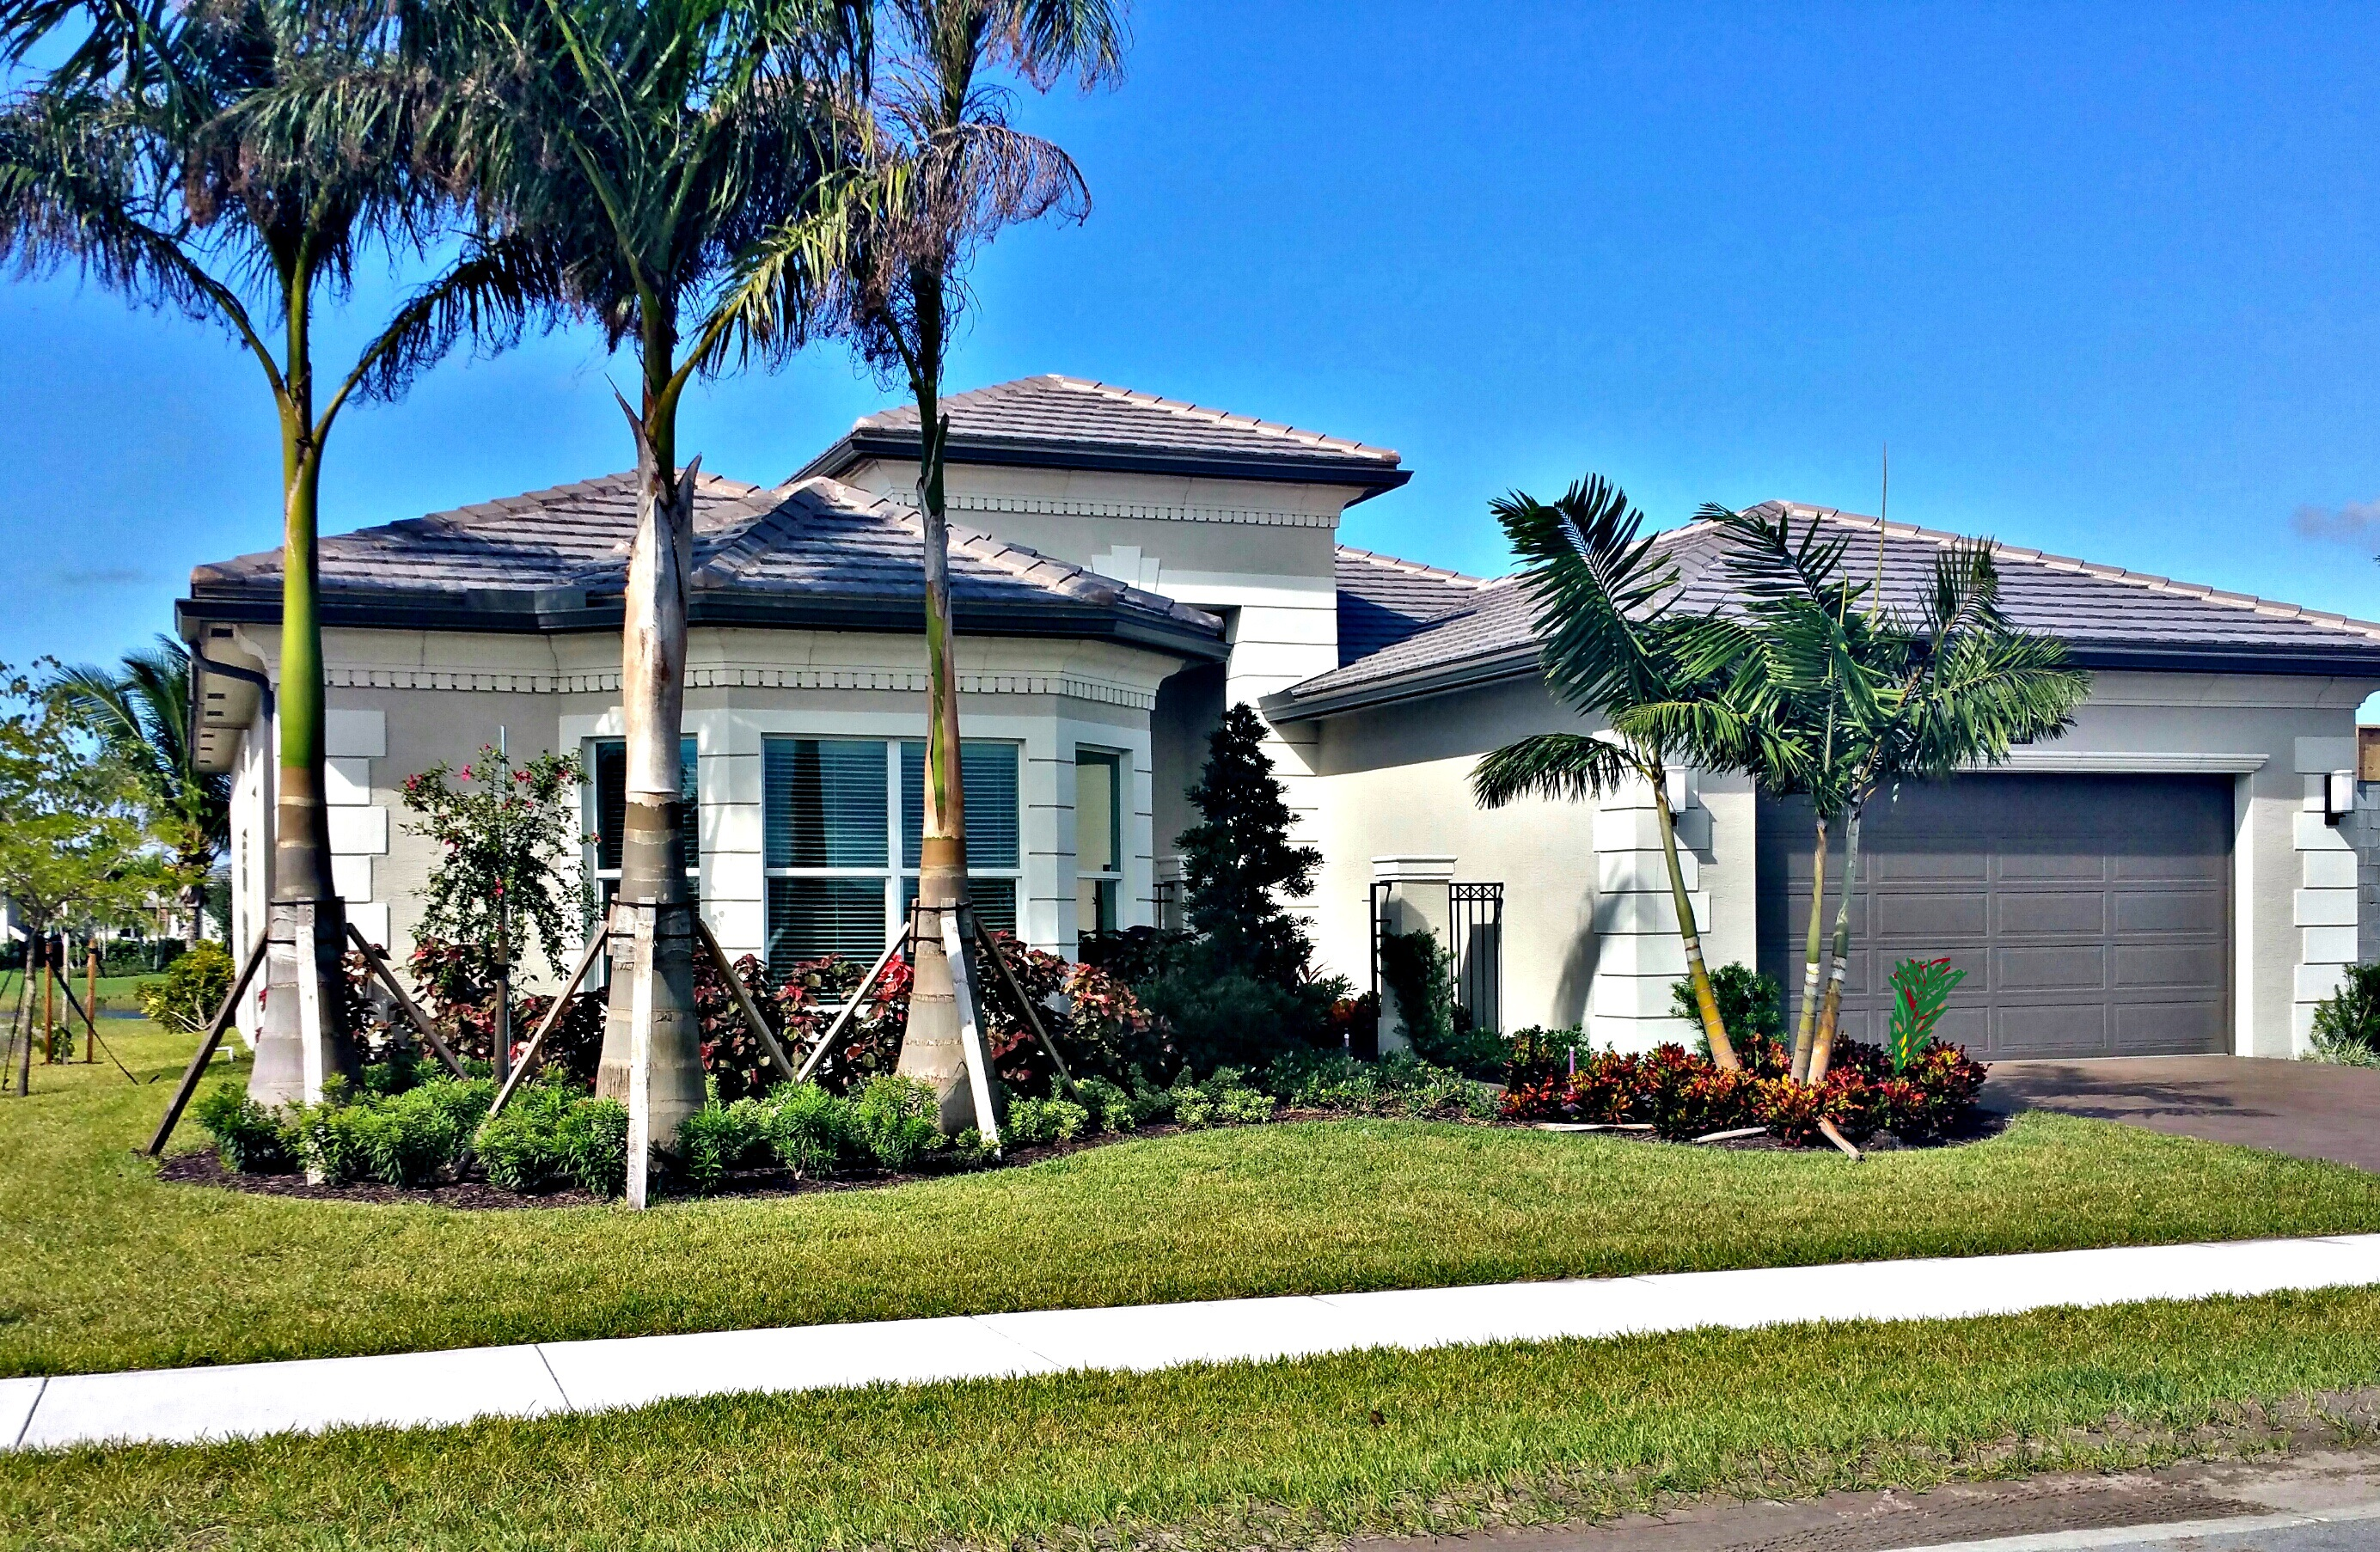 One of our Valencia sound homes for sale in Boynton Beach, FL